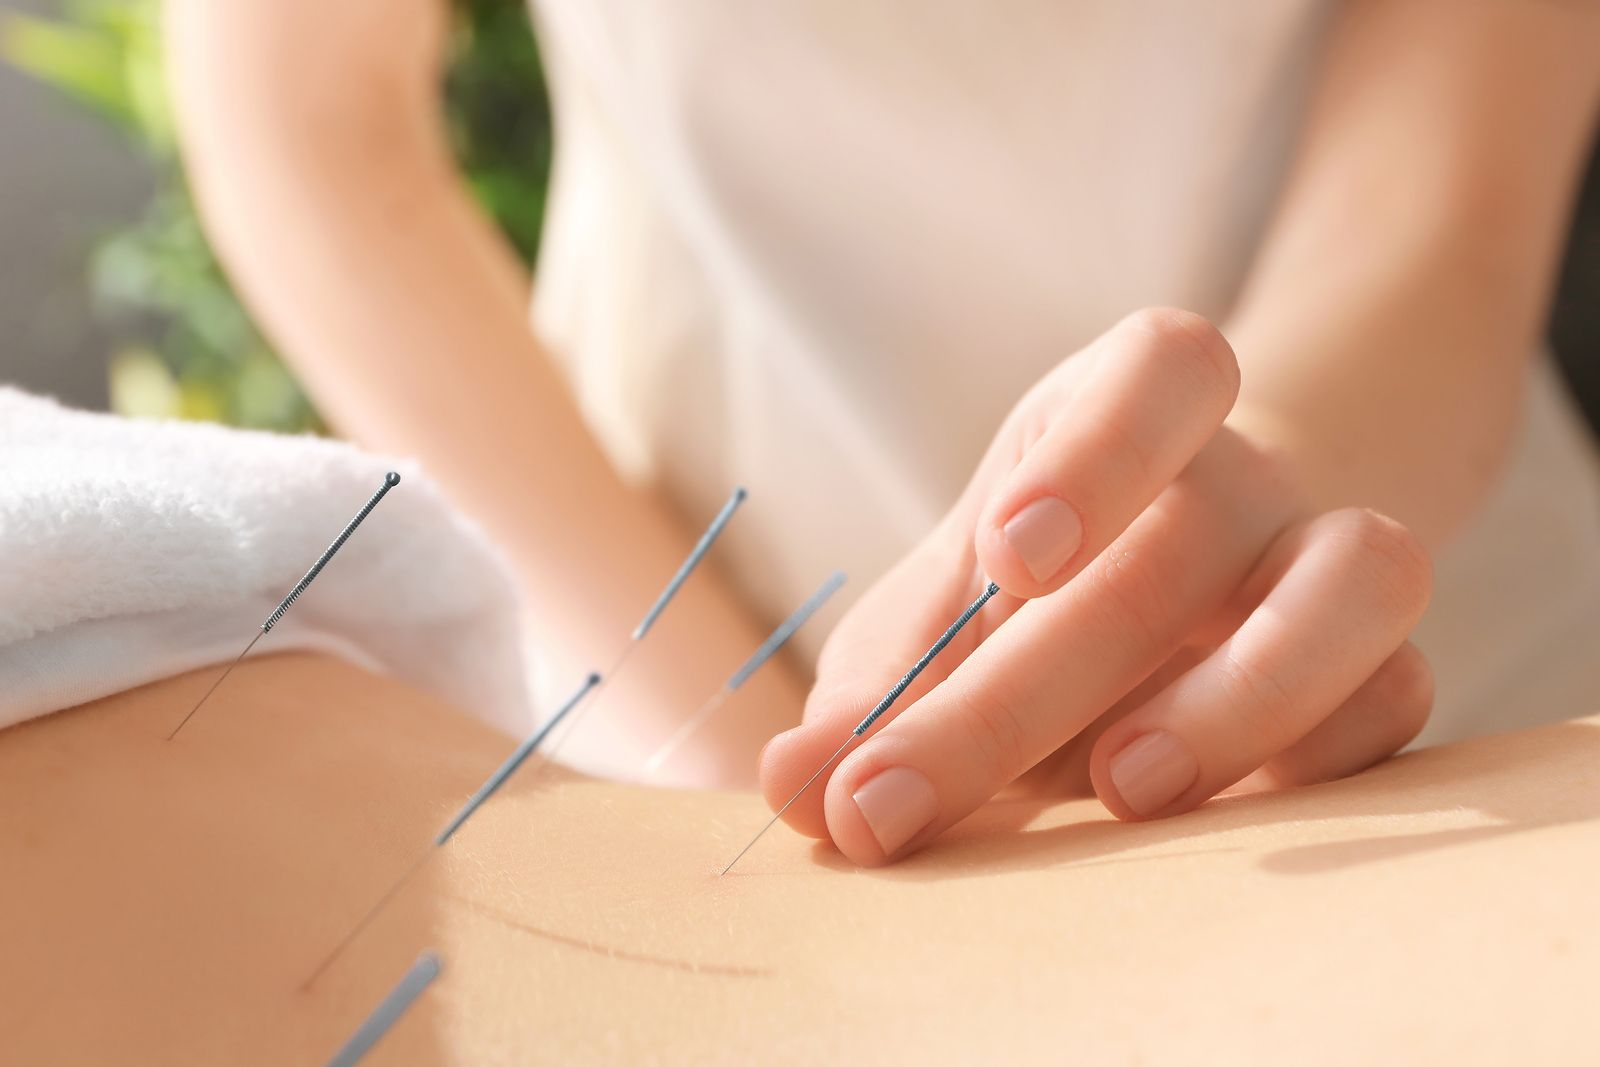 All the details about the first acupuncture session